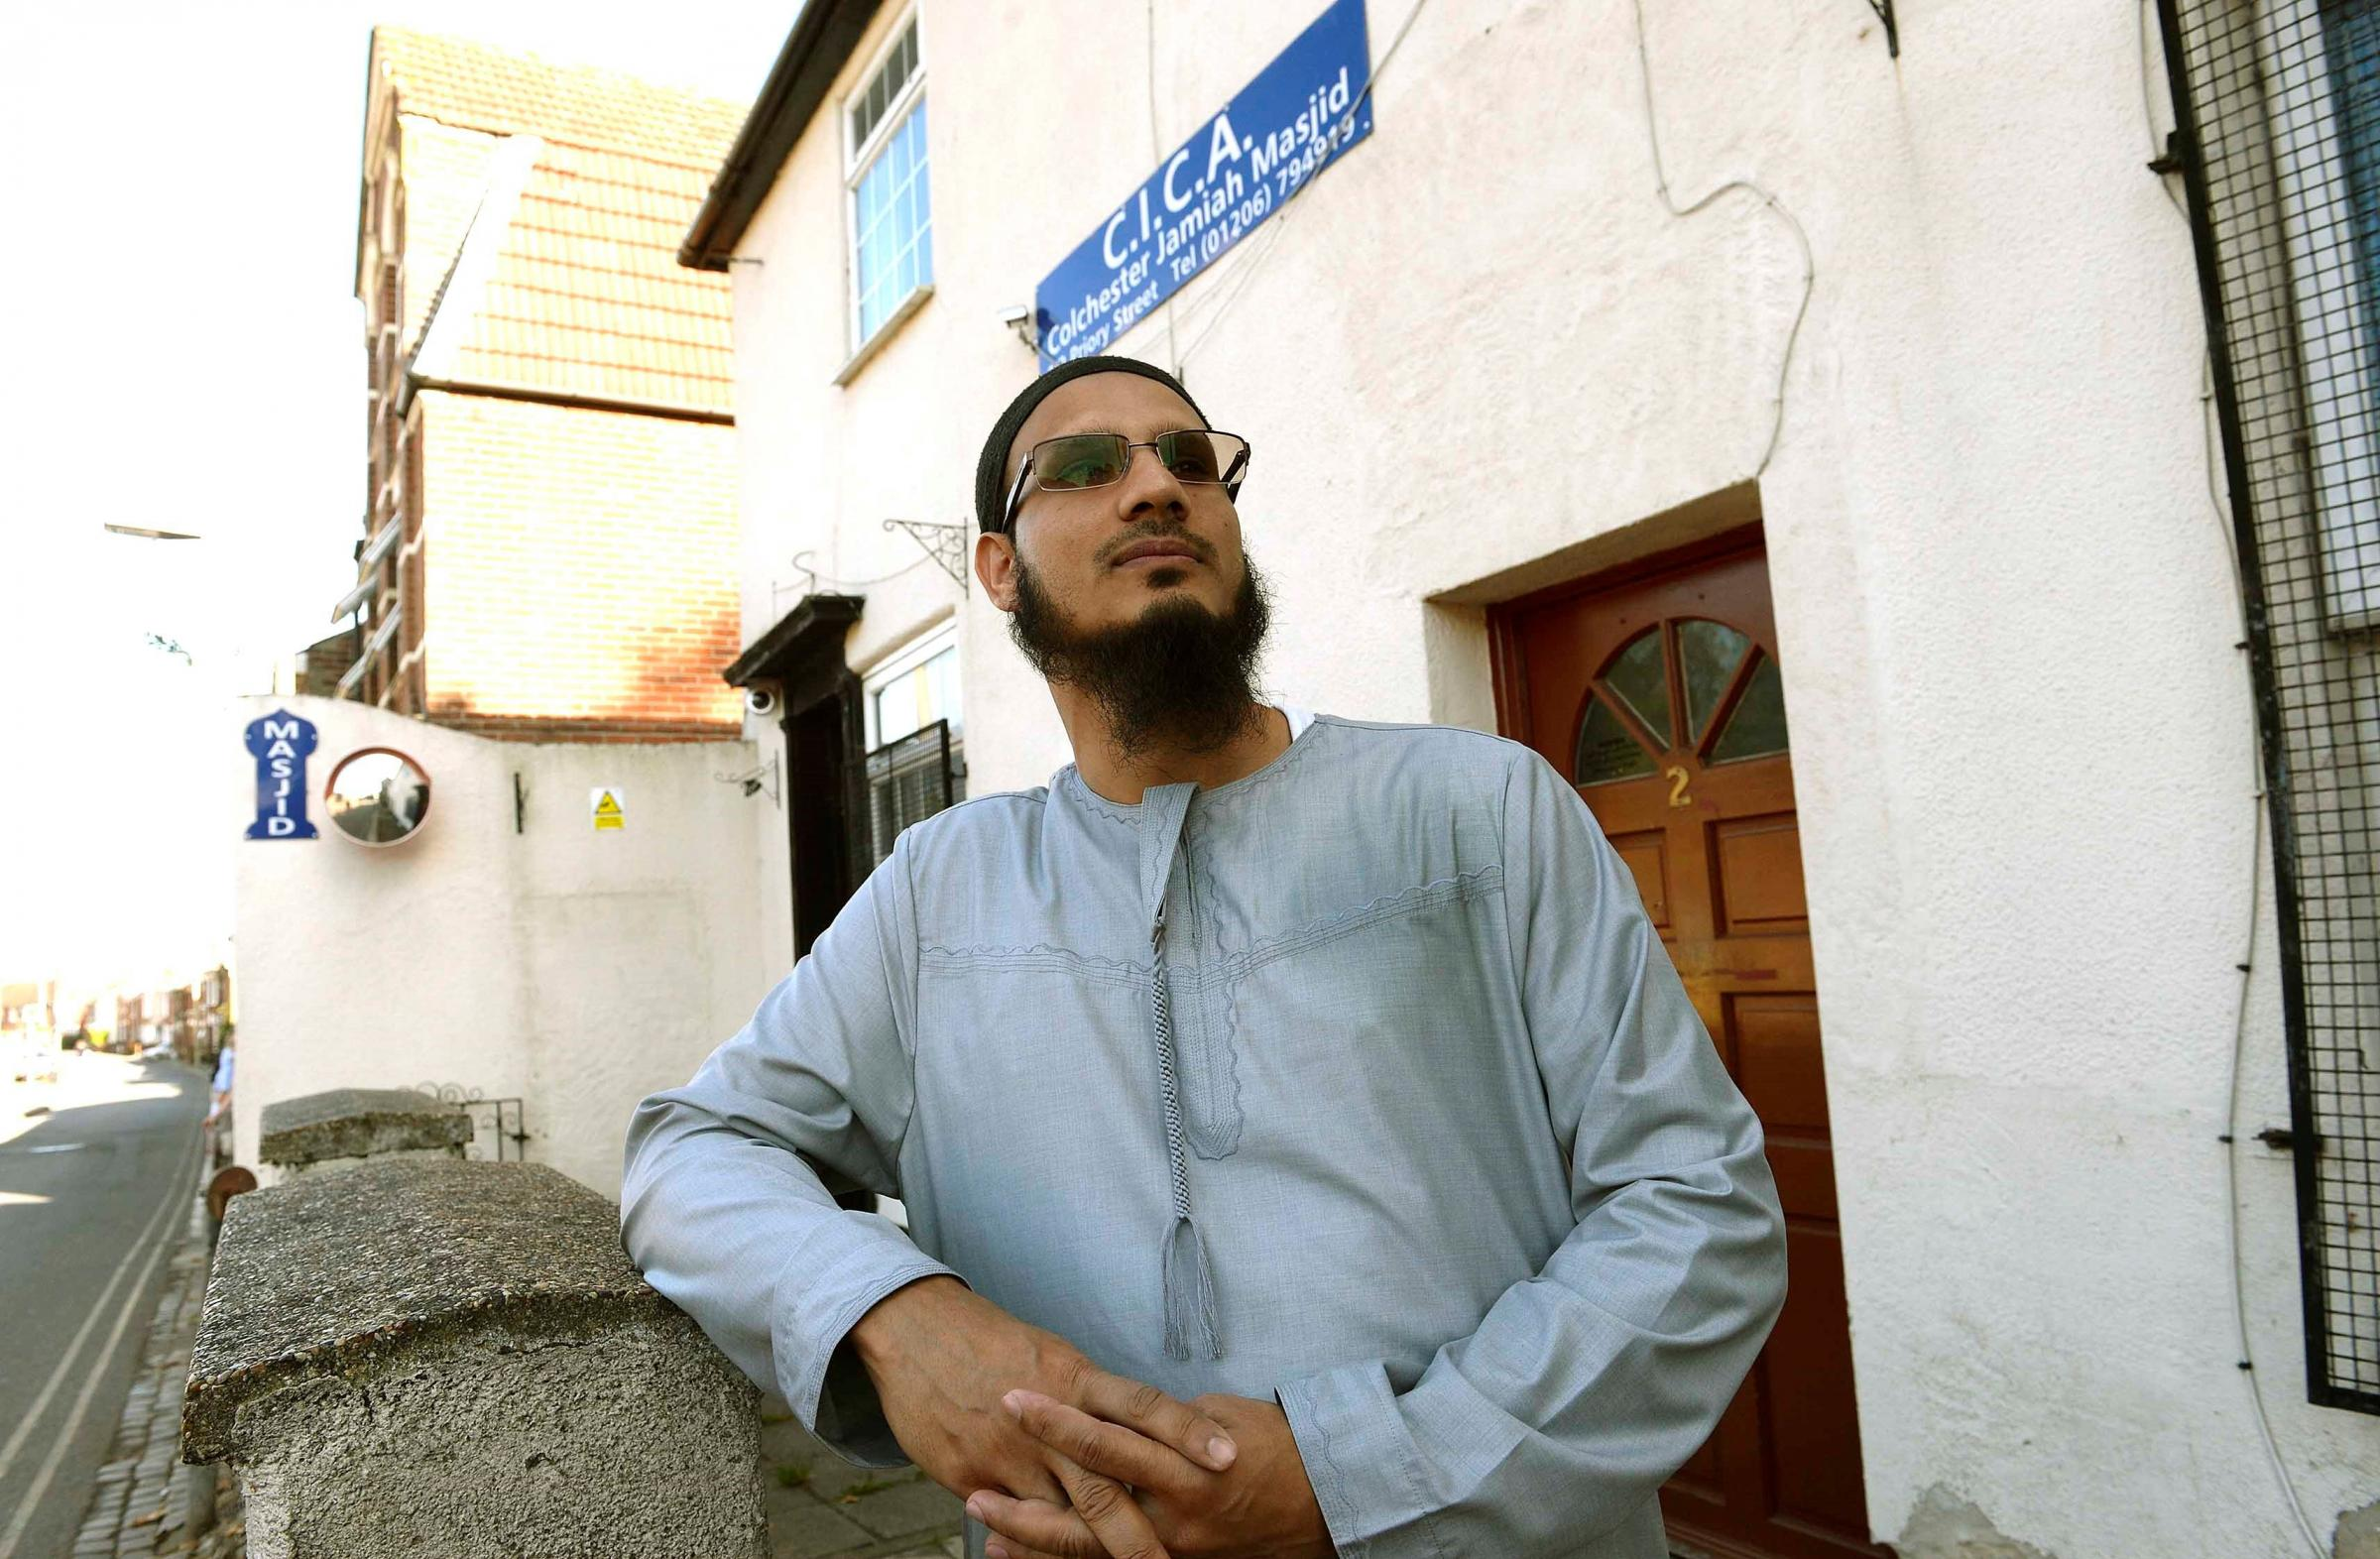 Saddened - chairman of Colchester Mosque Bashir Goni says Islamophobia has been allowed to develop